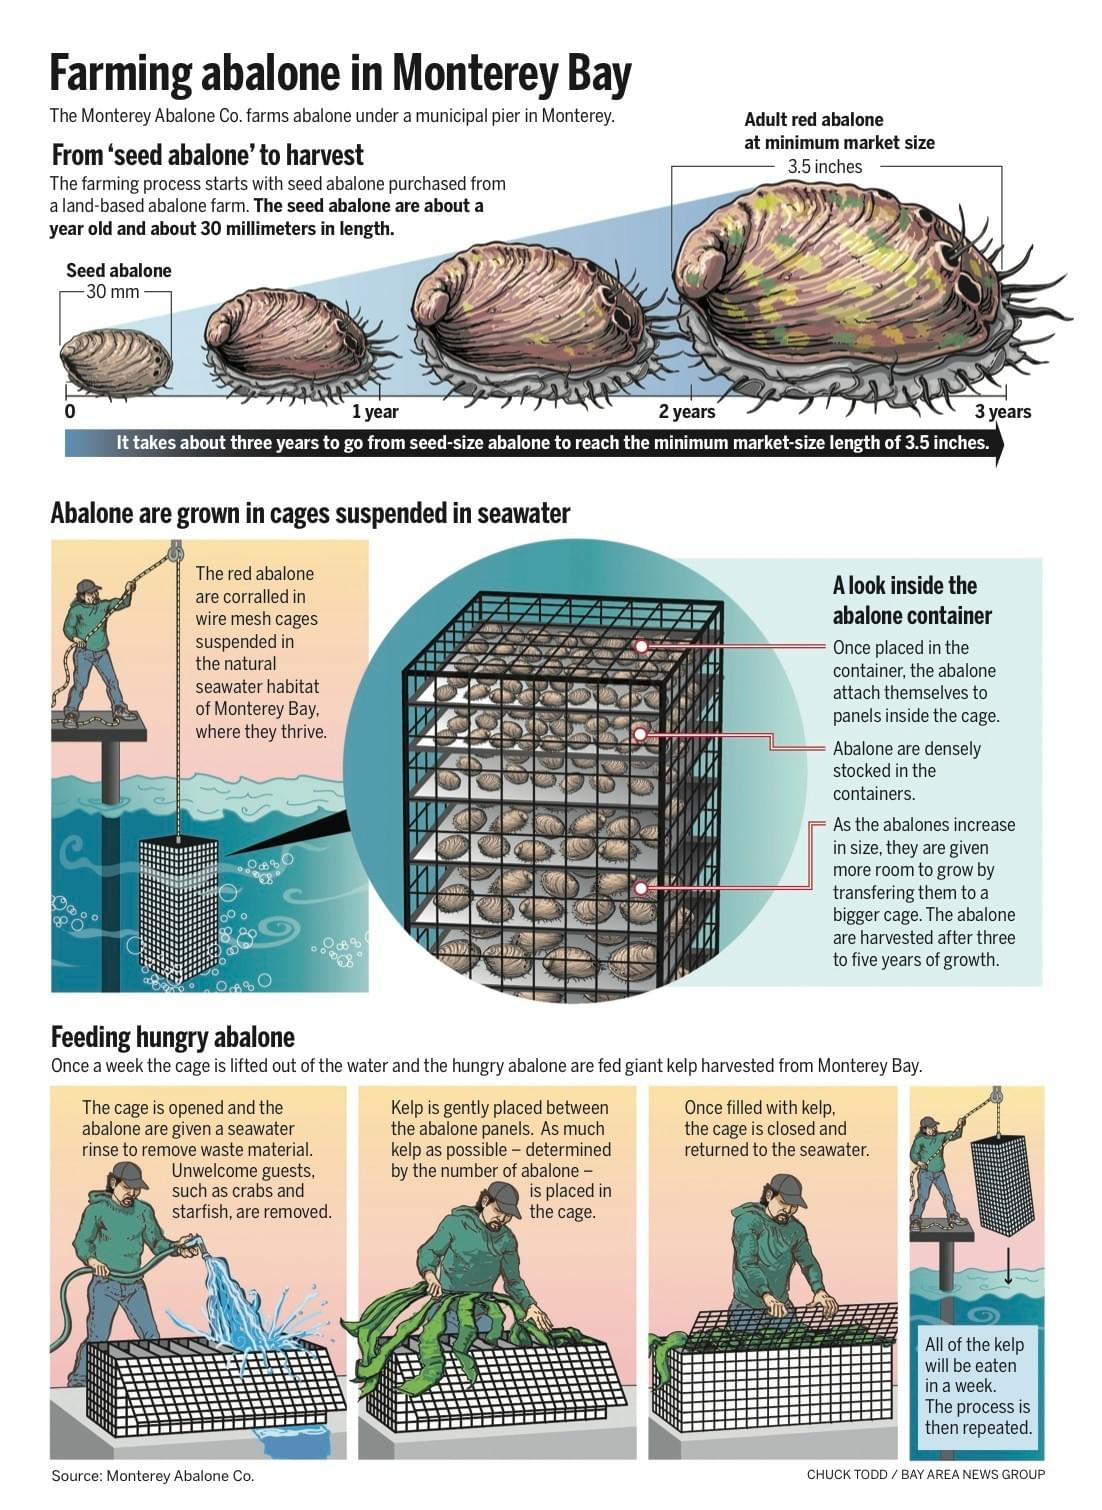 Infographic by Chuck Todd for Bay Area News Group explaining how Red Abalone are farming and harvested.